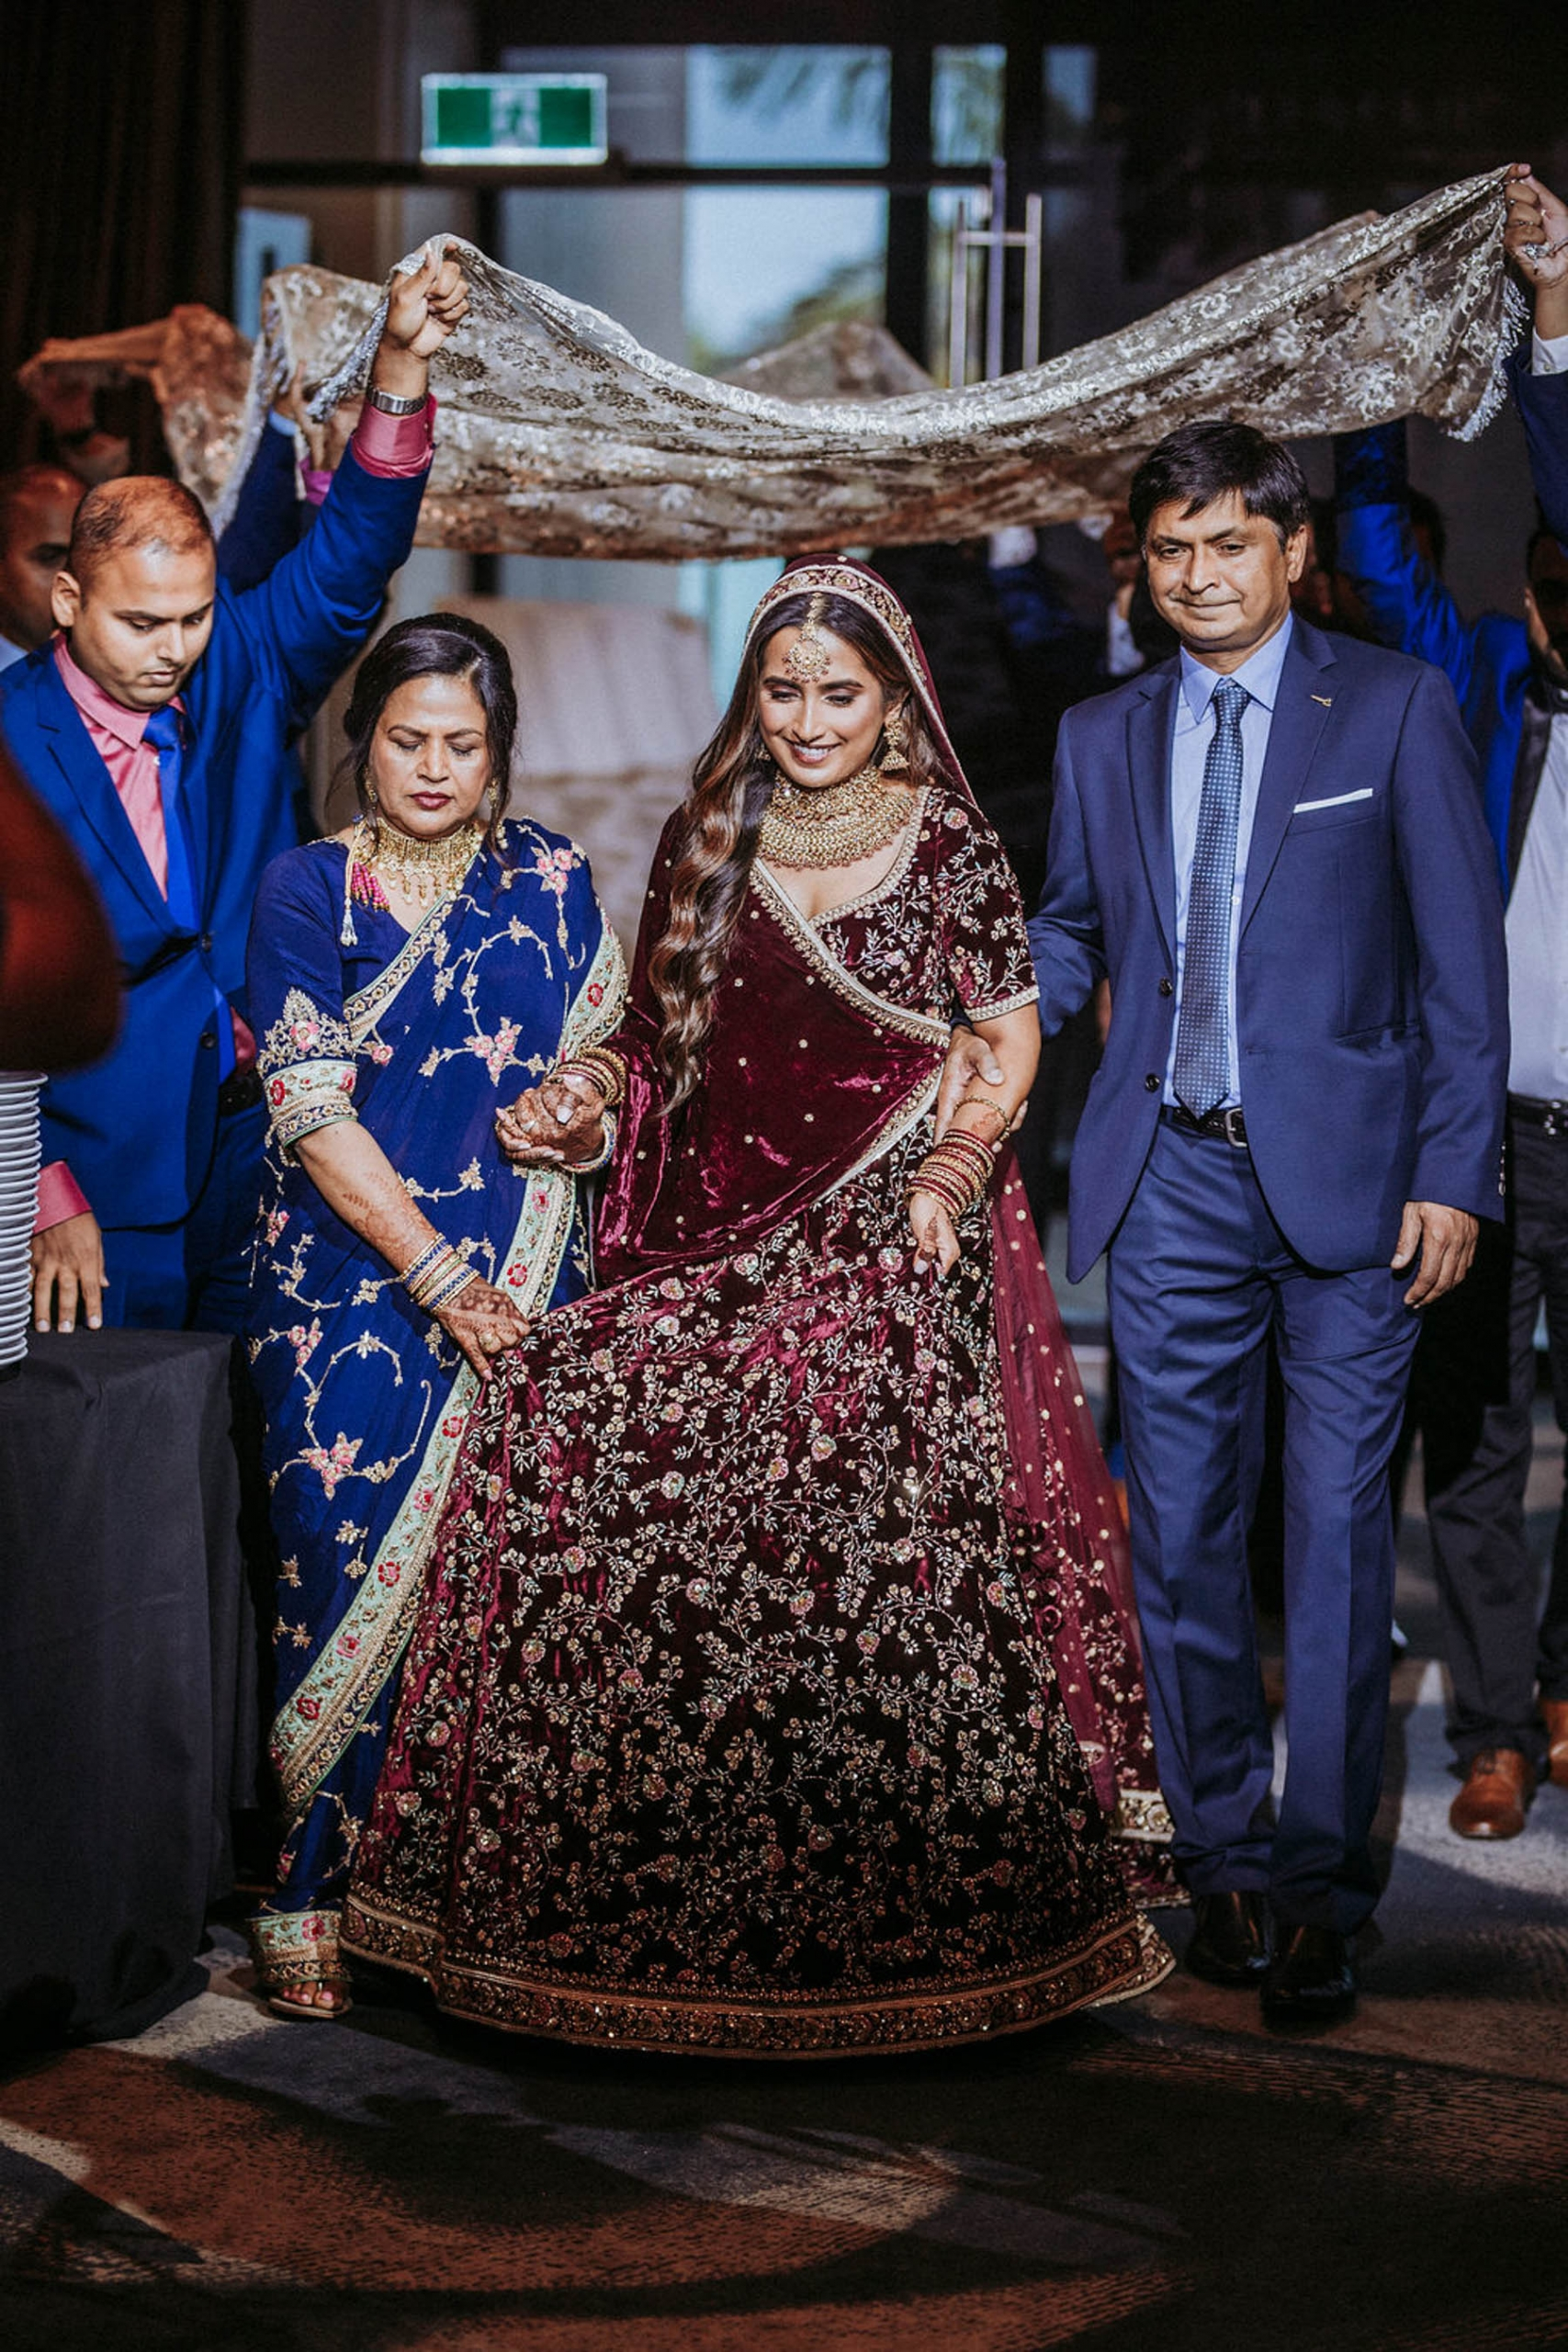 Shaheen and Qaseem's Nikah ceremony in Sydney. Indian bride, Shaheen wore a stunning velvet Sabyasachi lehenga for her wedding ceremony.